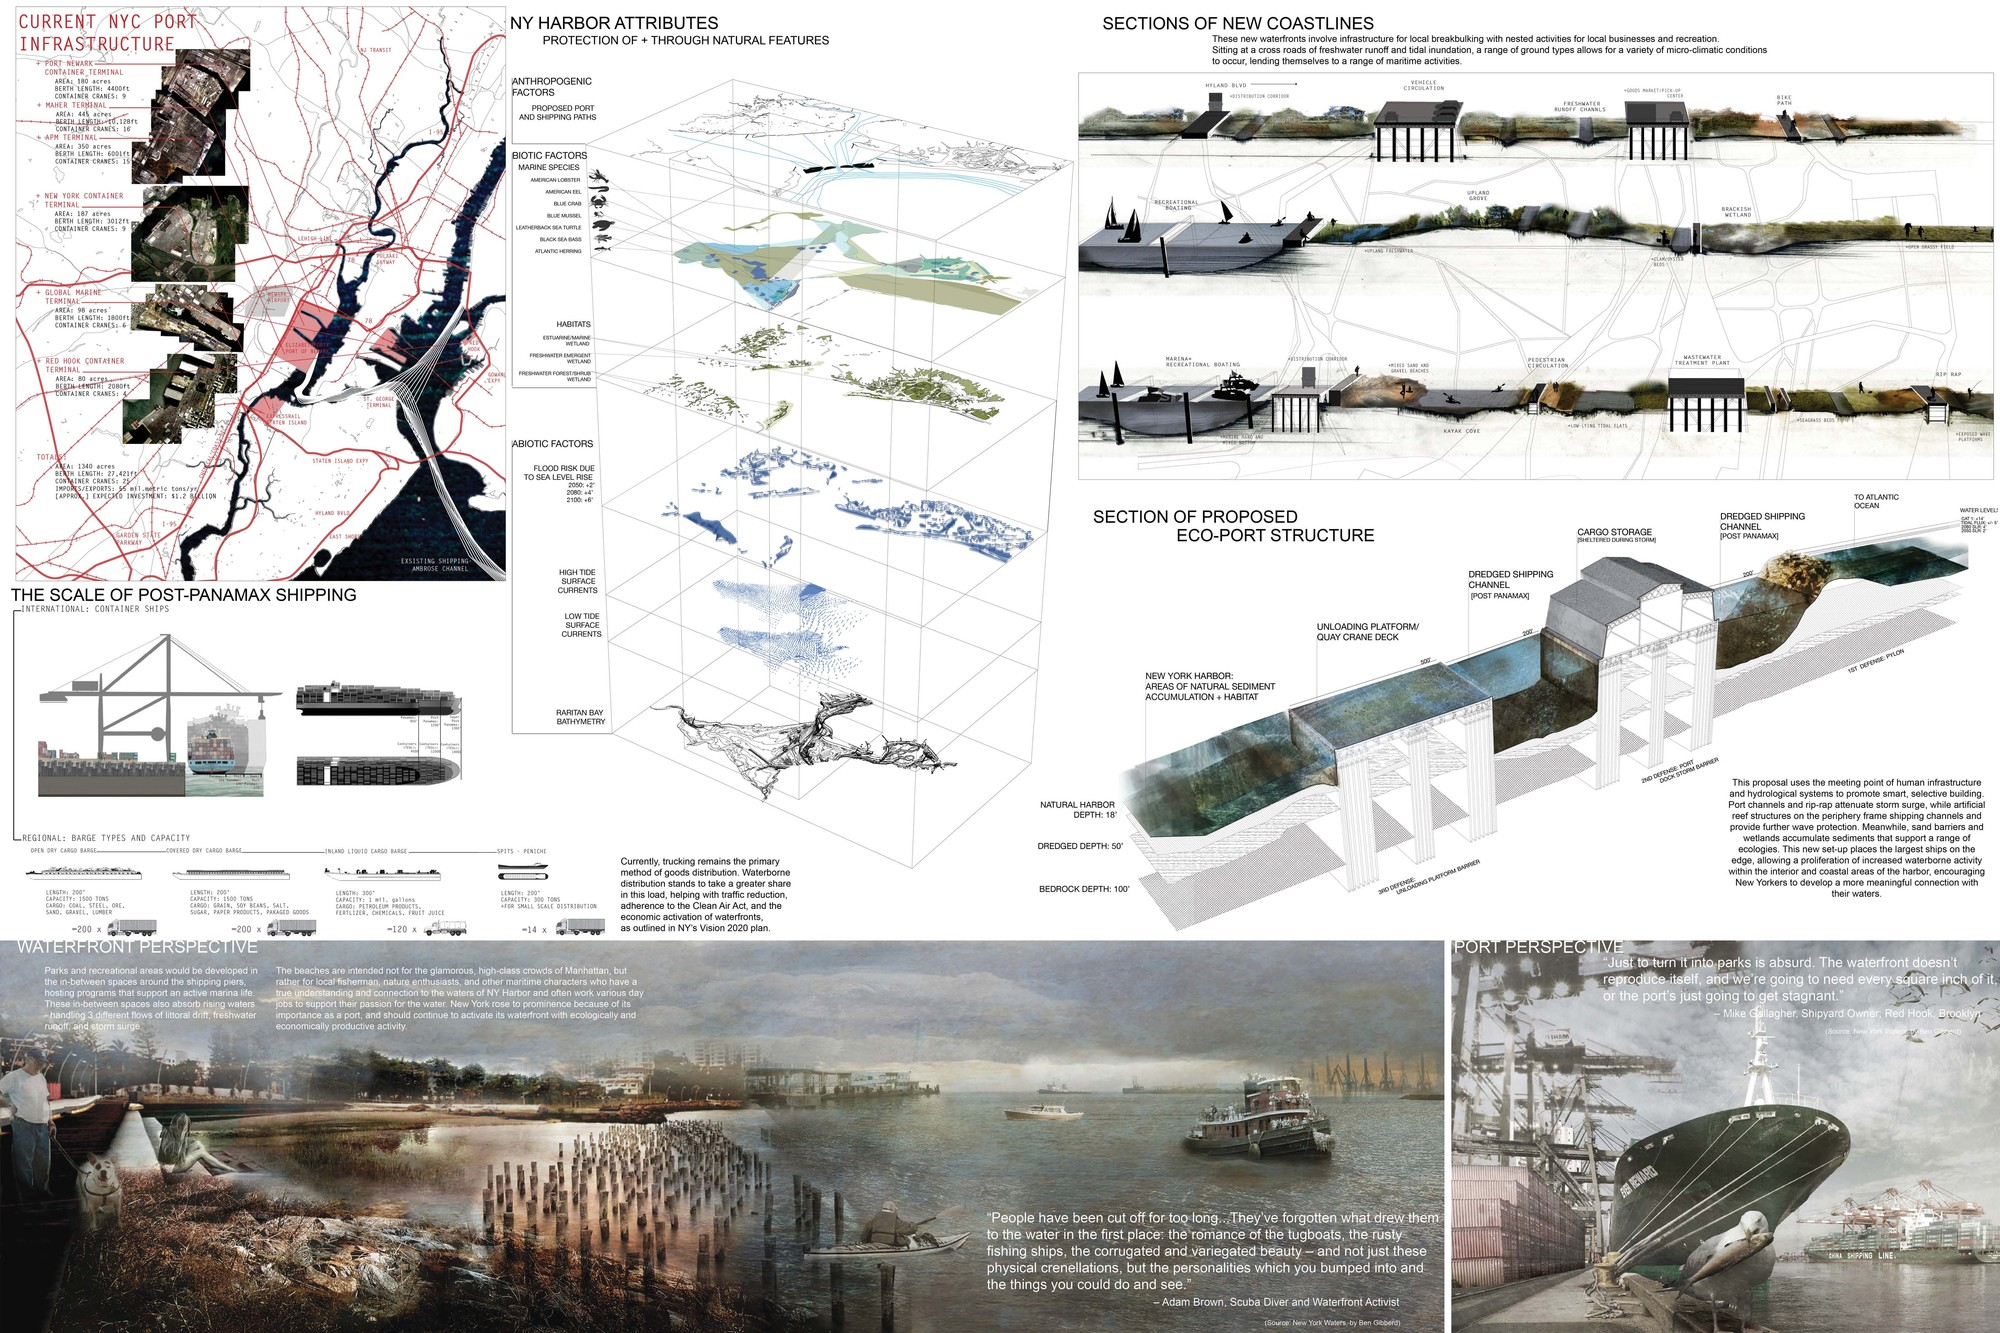 A Working Waterfront for NY Harbor: Using Shipping Infrastructure as Coastal Defense. Image Courtesy of ONE Prize